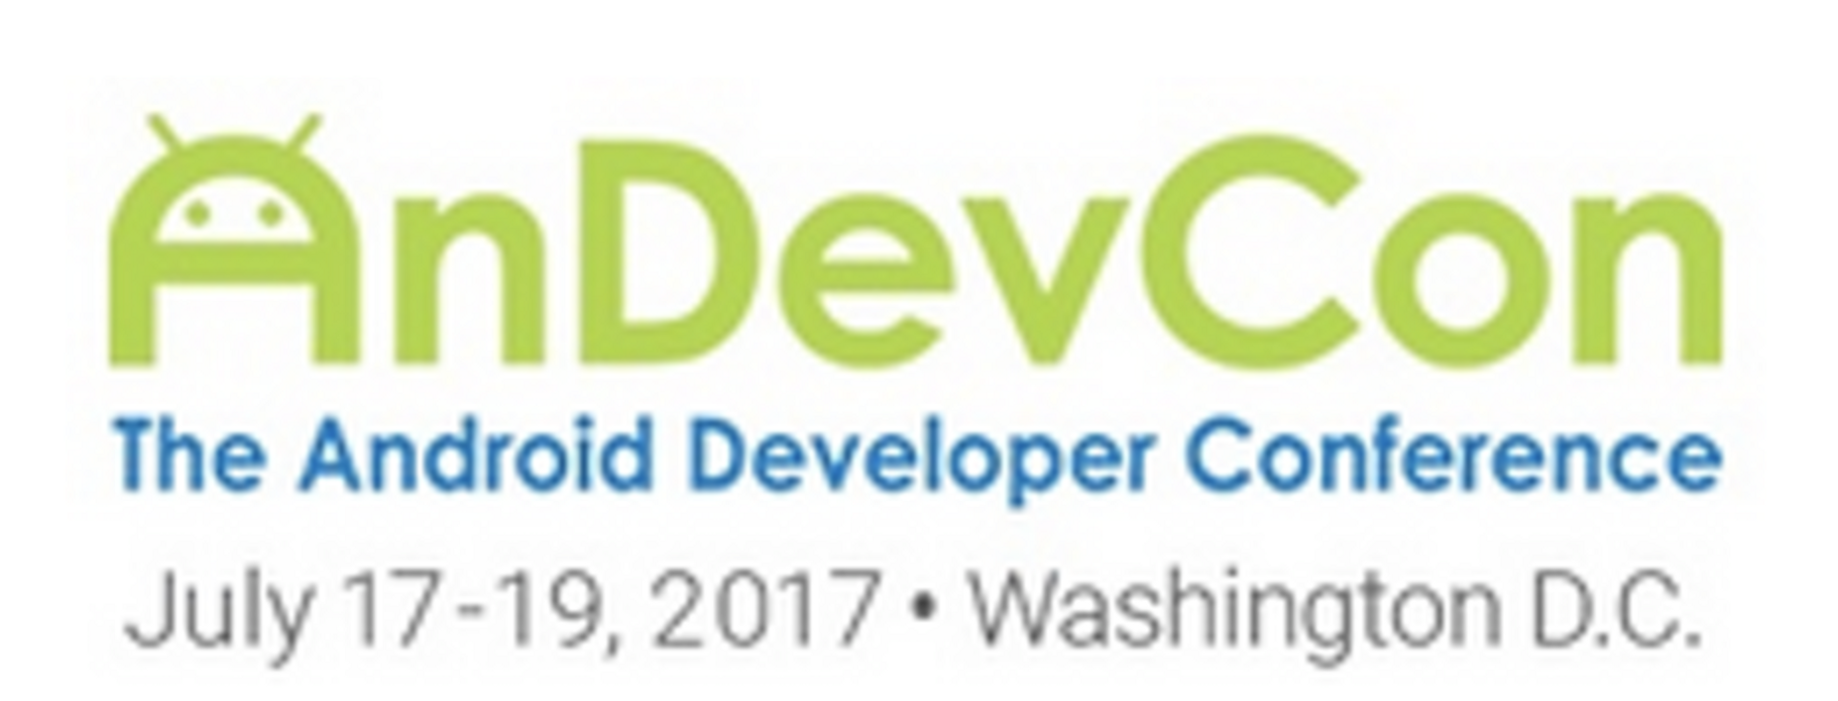 AnDevCon 2017 — What I learned - Manuel Vivo - Medium